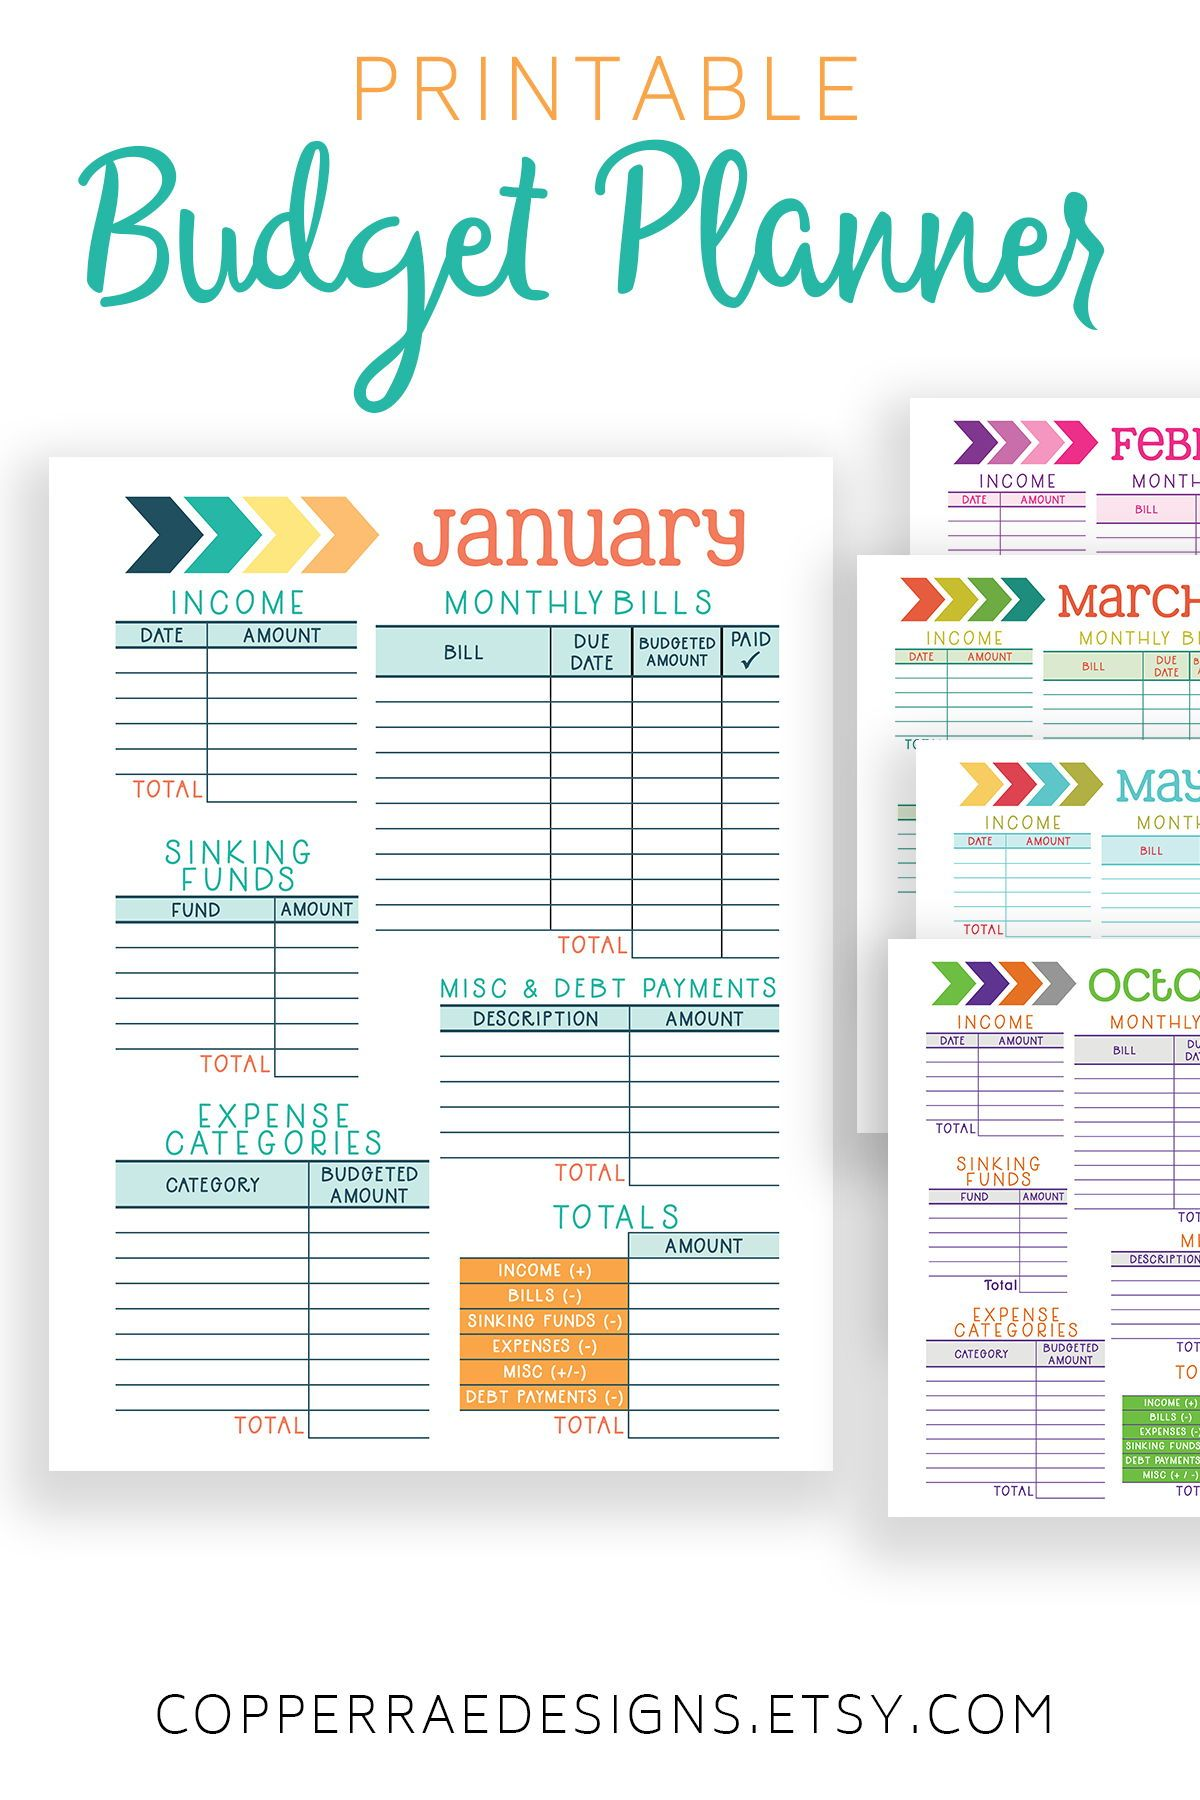 Printable Financial Planner Monthly Budget Worksheet Budget Etsy Budget Planner Budget Planner Printable Monthly Budget Planner